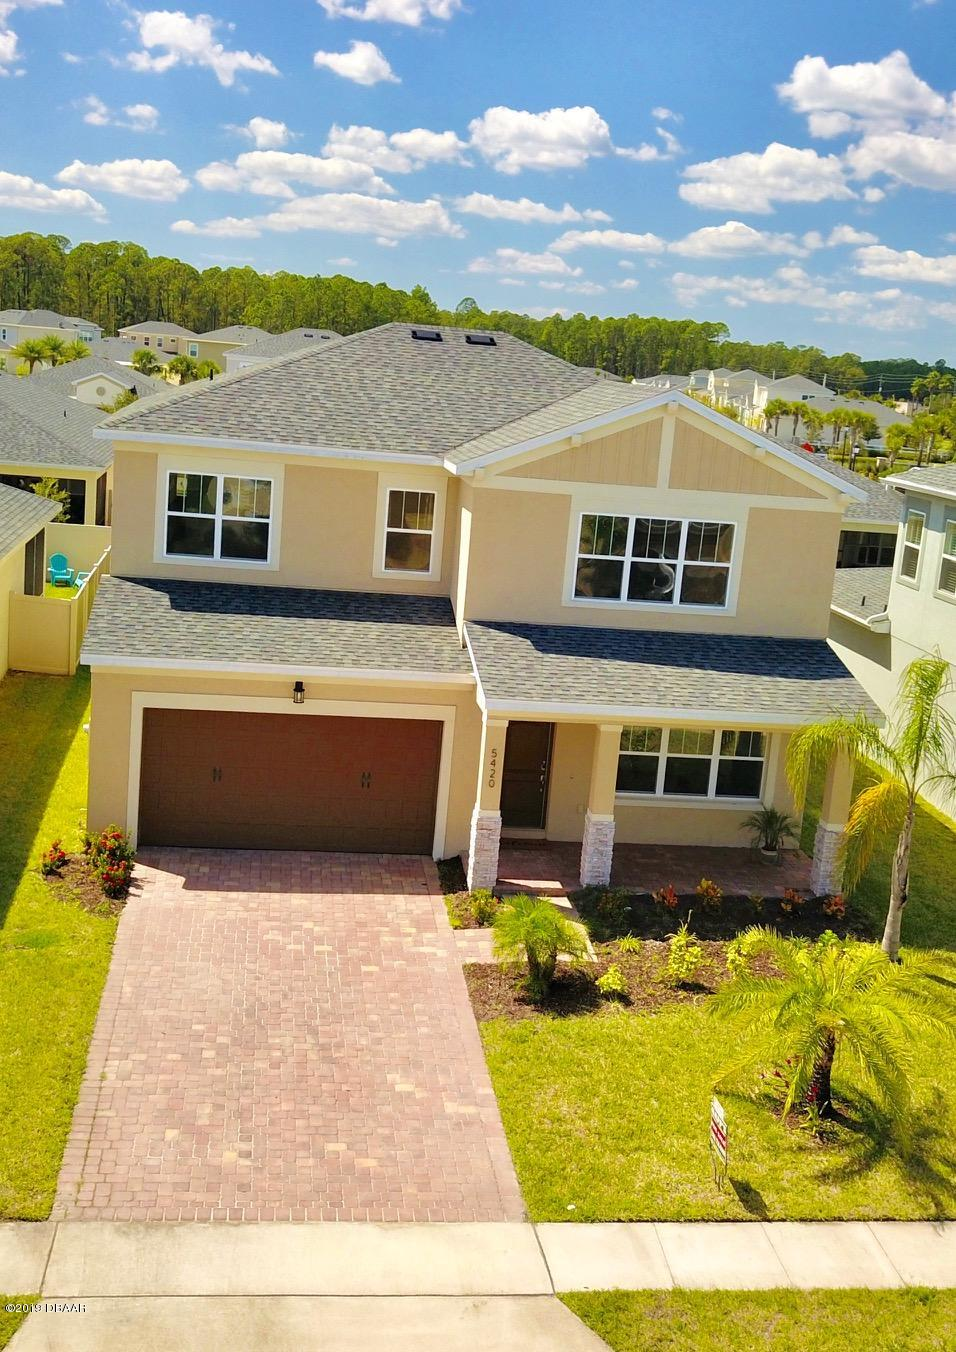 Photo of 5420 Estero Loop, Port Orange, FL 32128